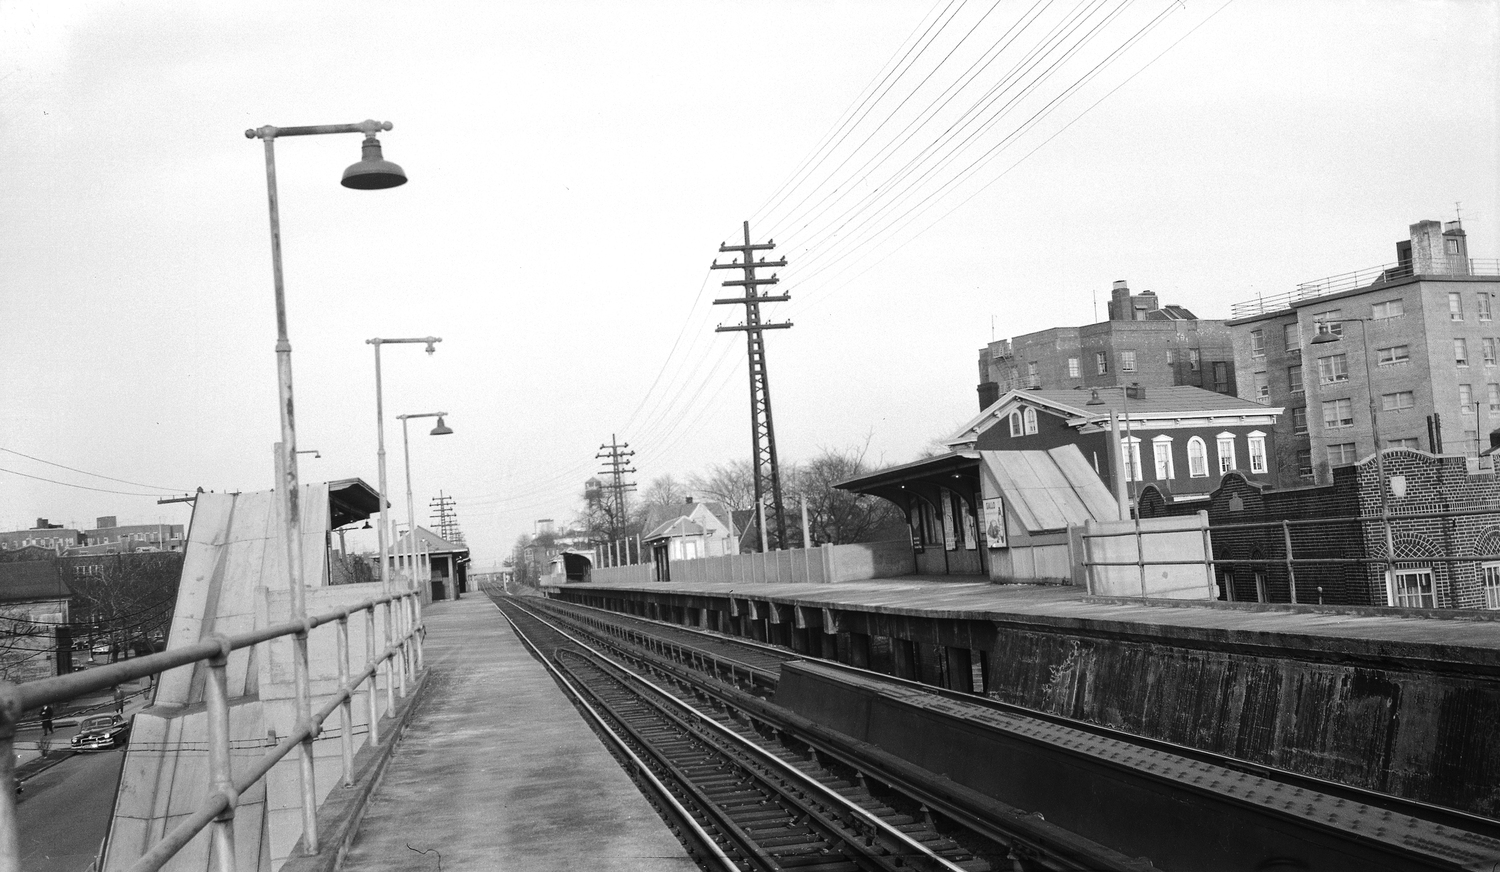 LIRR 12 | Elmhurst NY LIRR Station, looking East